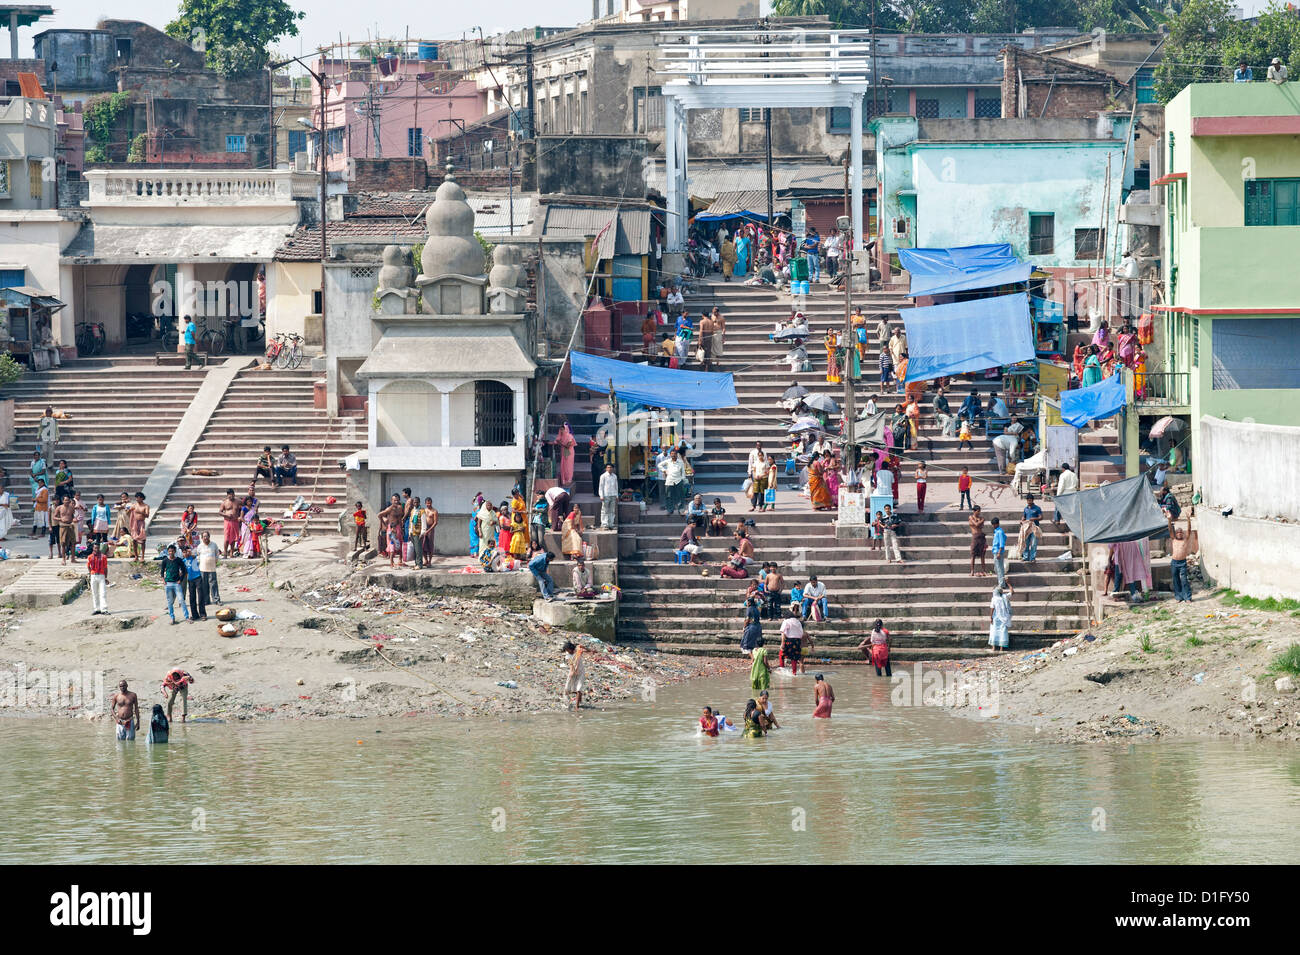 River ghats, villagers performing ablutions in the River Hugli (River Hooghly), West Bengal, India, Asia - Stock Image